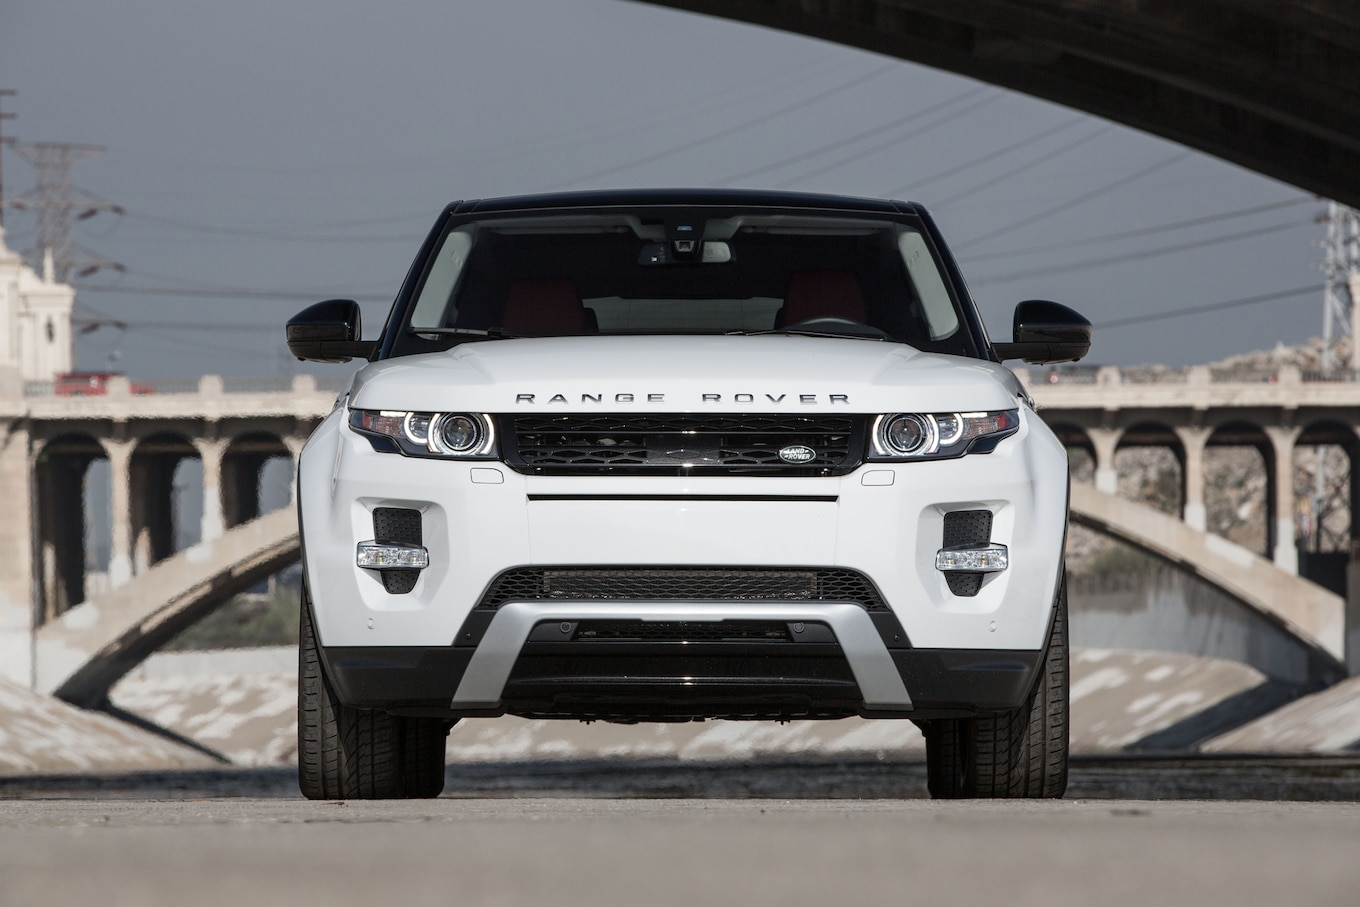 Jaguar Land Rover Sues Maker of Range Rover Evoque Lookalike